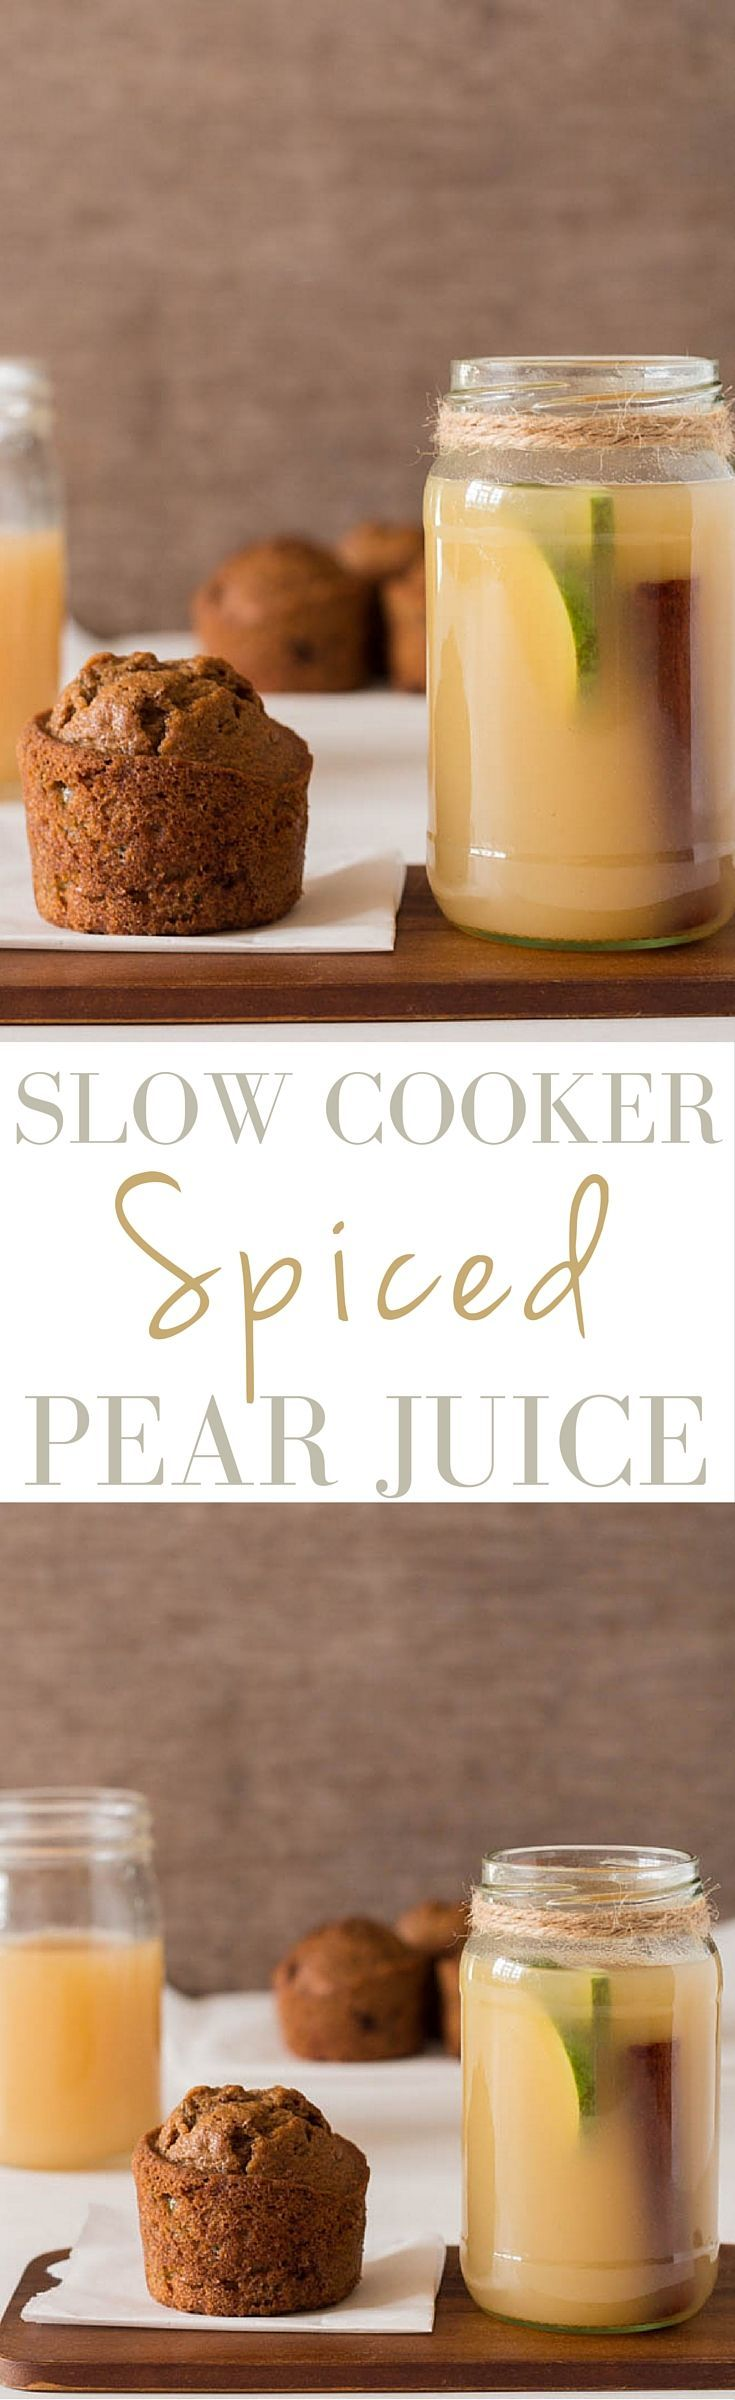 Slow Cooker Spiced Pear Juice   Recipes From A Pantry